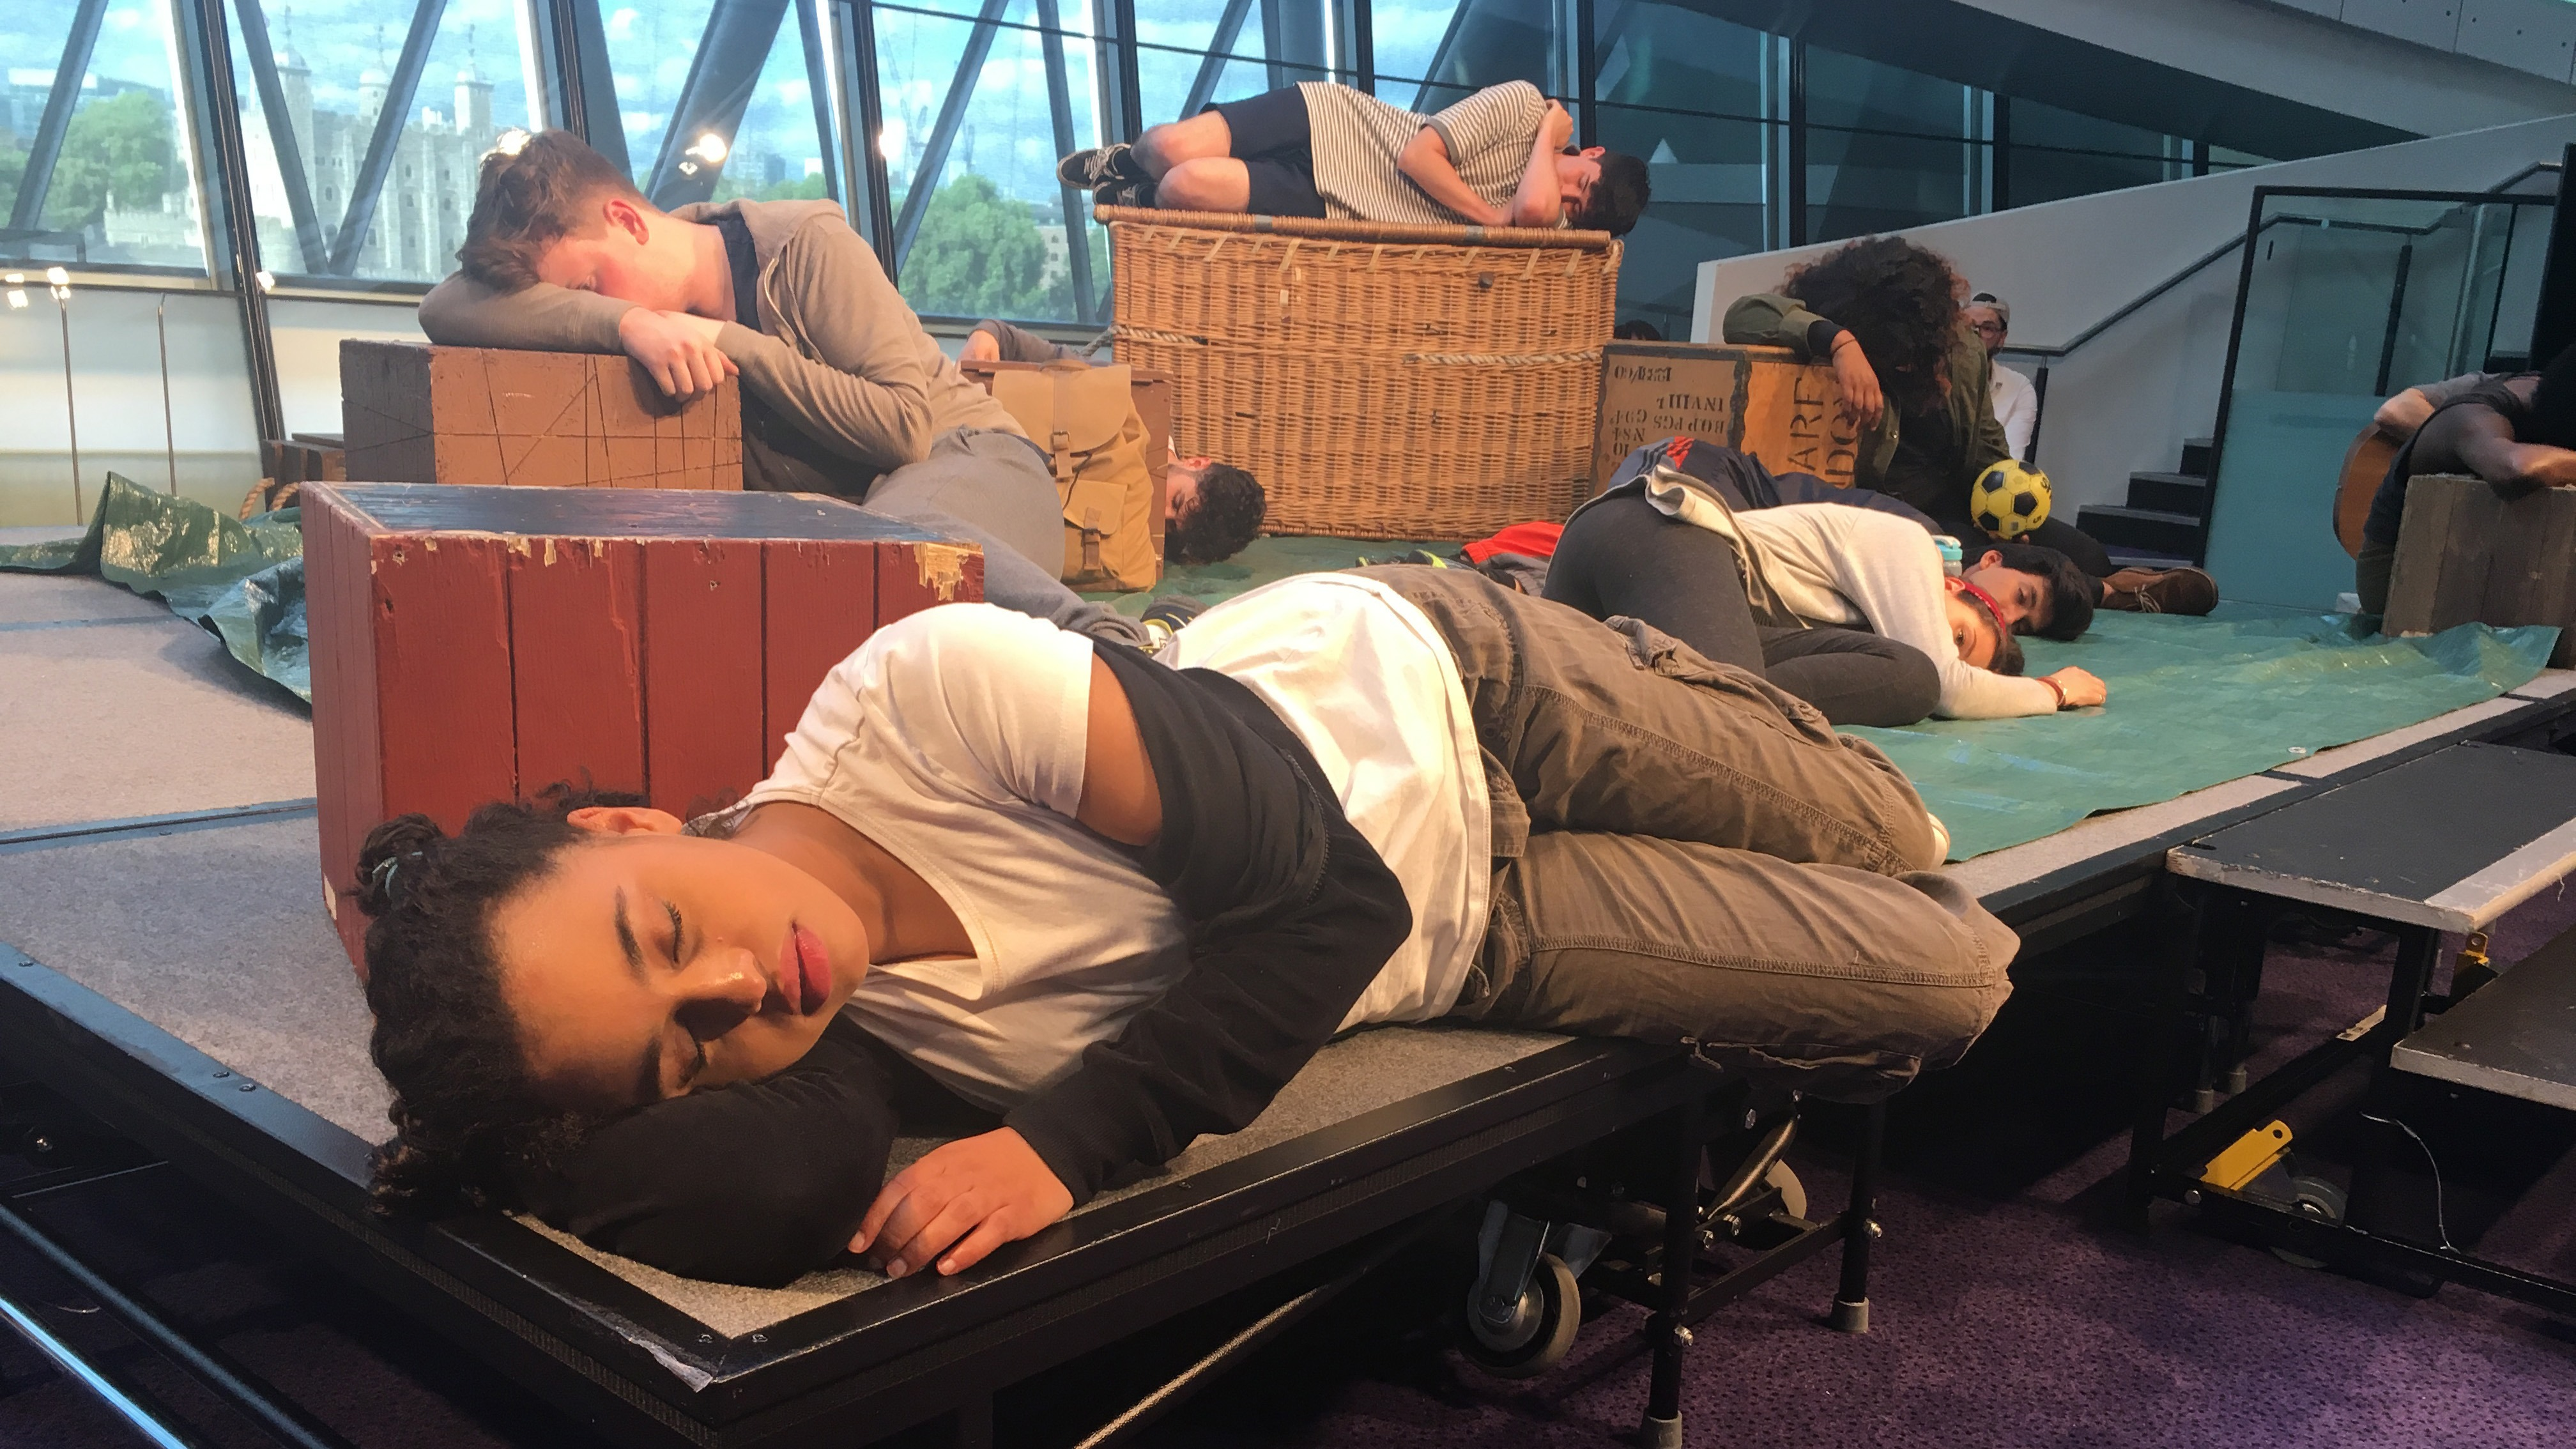 """Yusra, played by Rhianna Merralls, struggles to fall asleep in the play, """"Wherever I Lay My Head,"""" performed in London City Hall."""